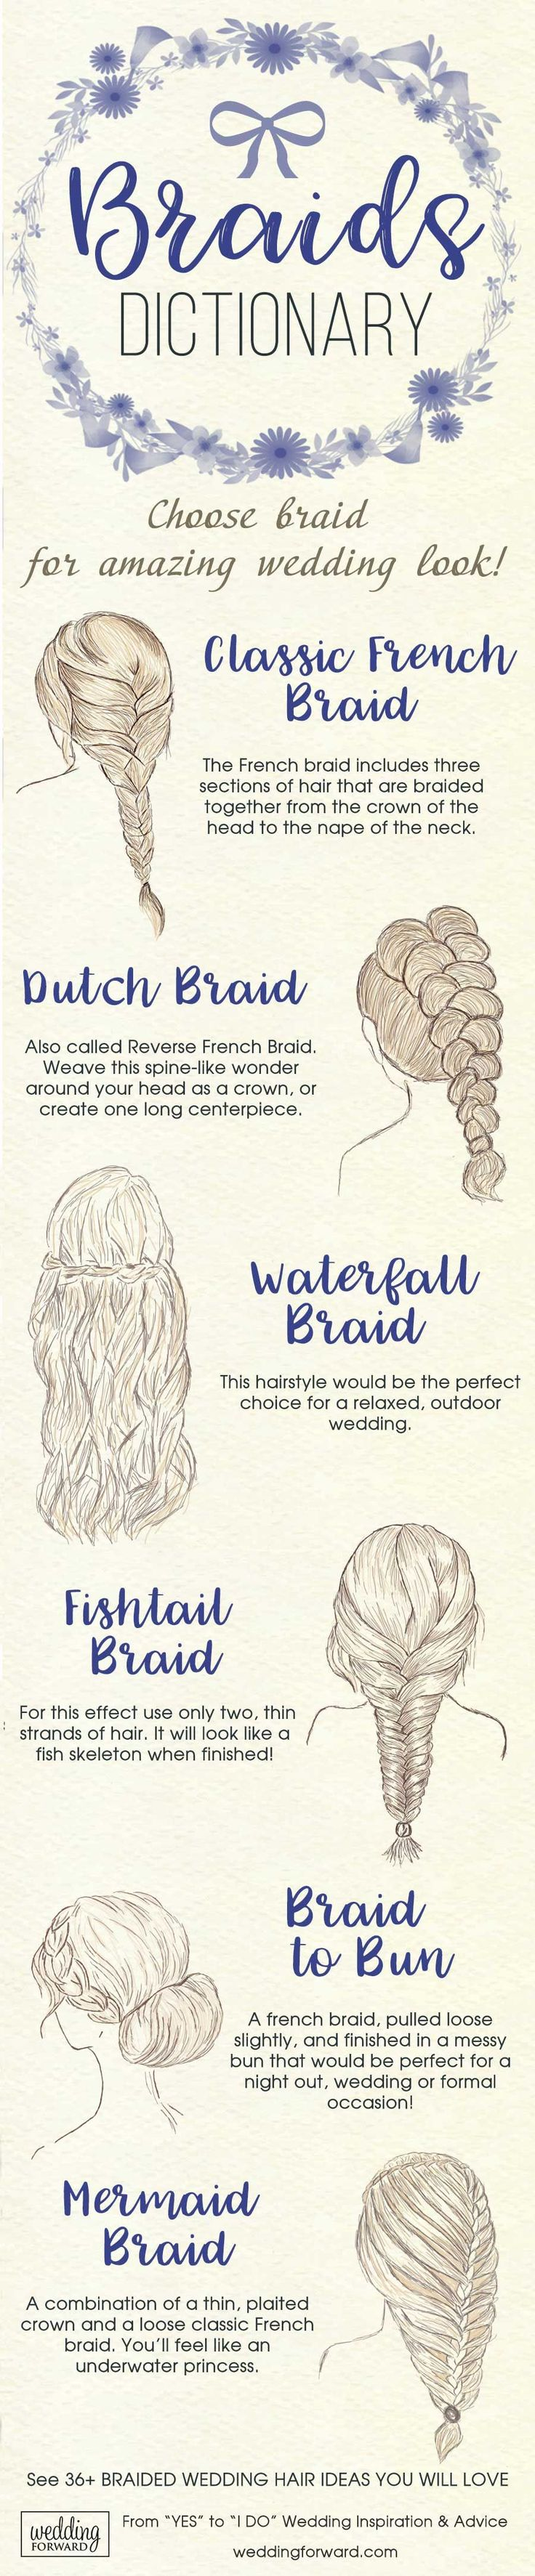 36 Braided Wedding Hair Ideas You Will Love ❤️ To make your hunt for dream l...